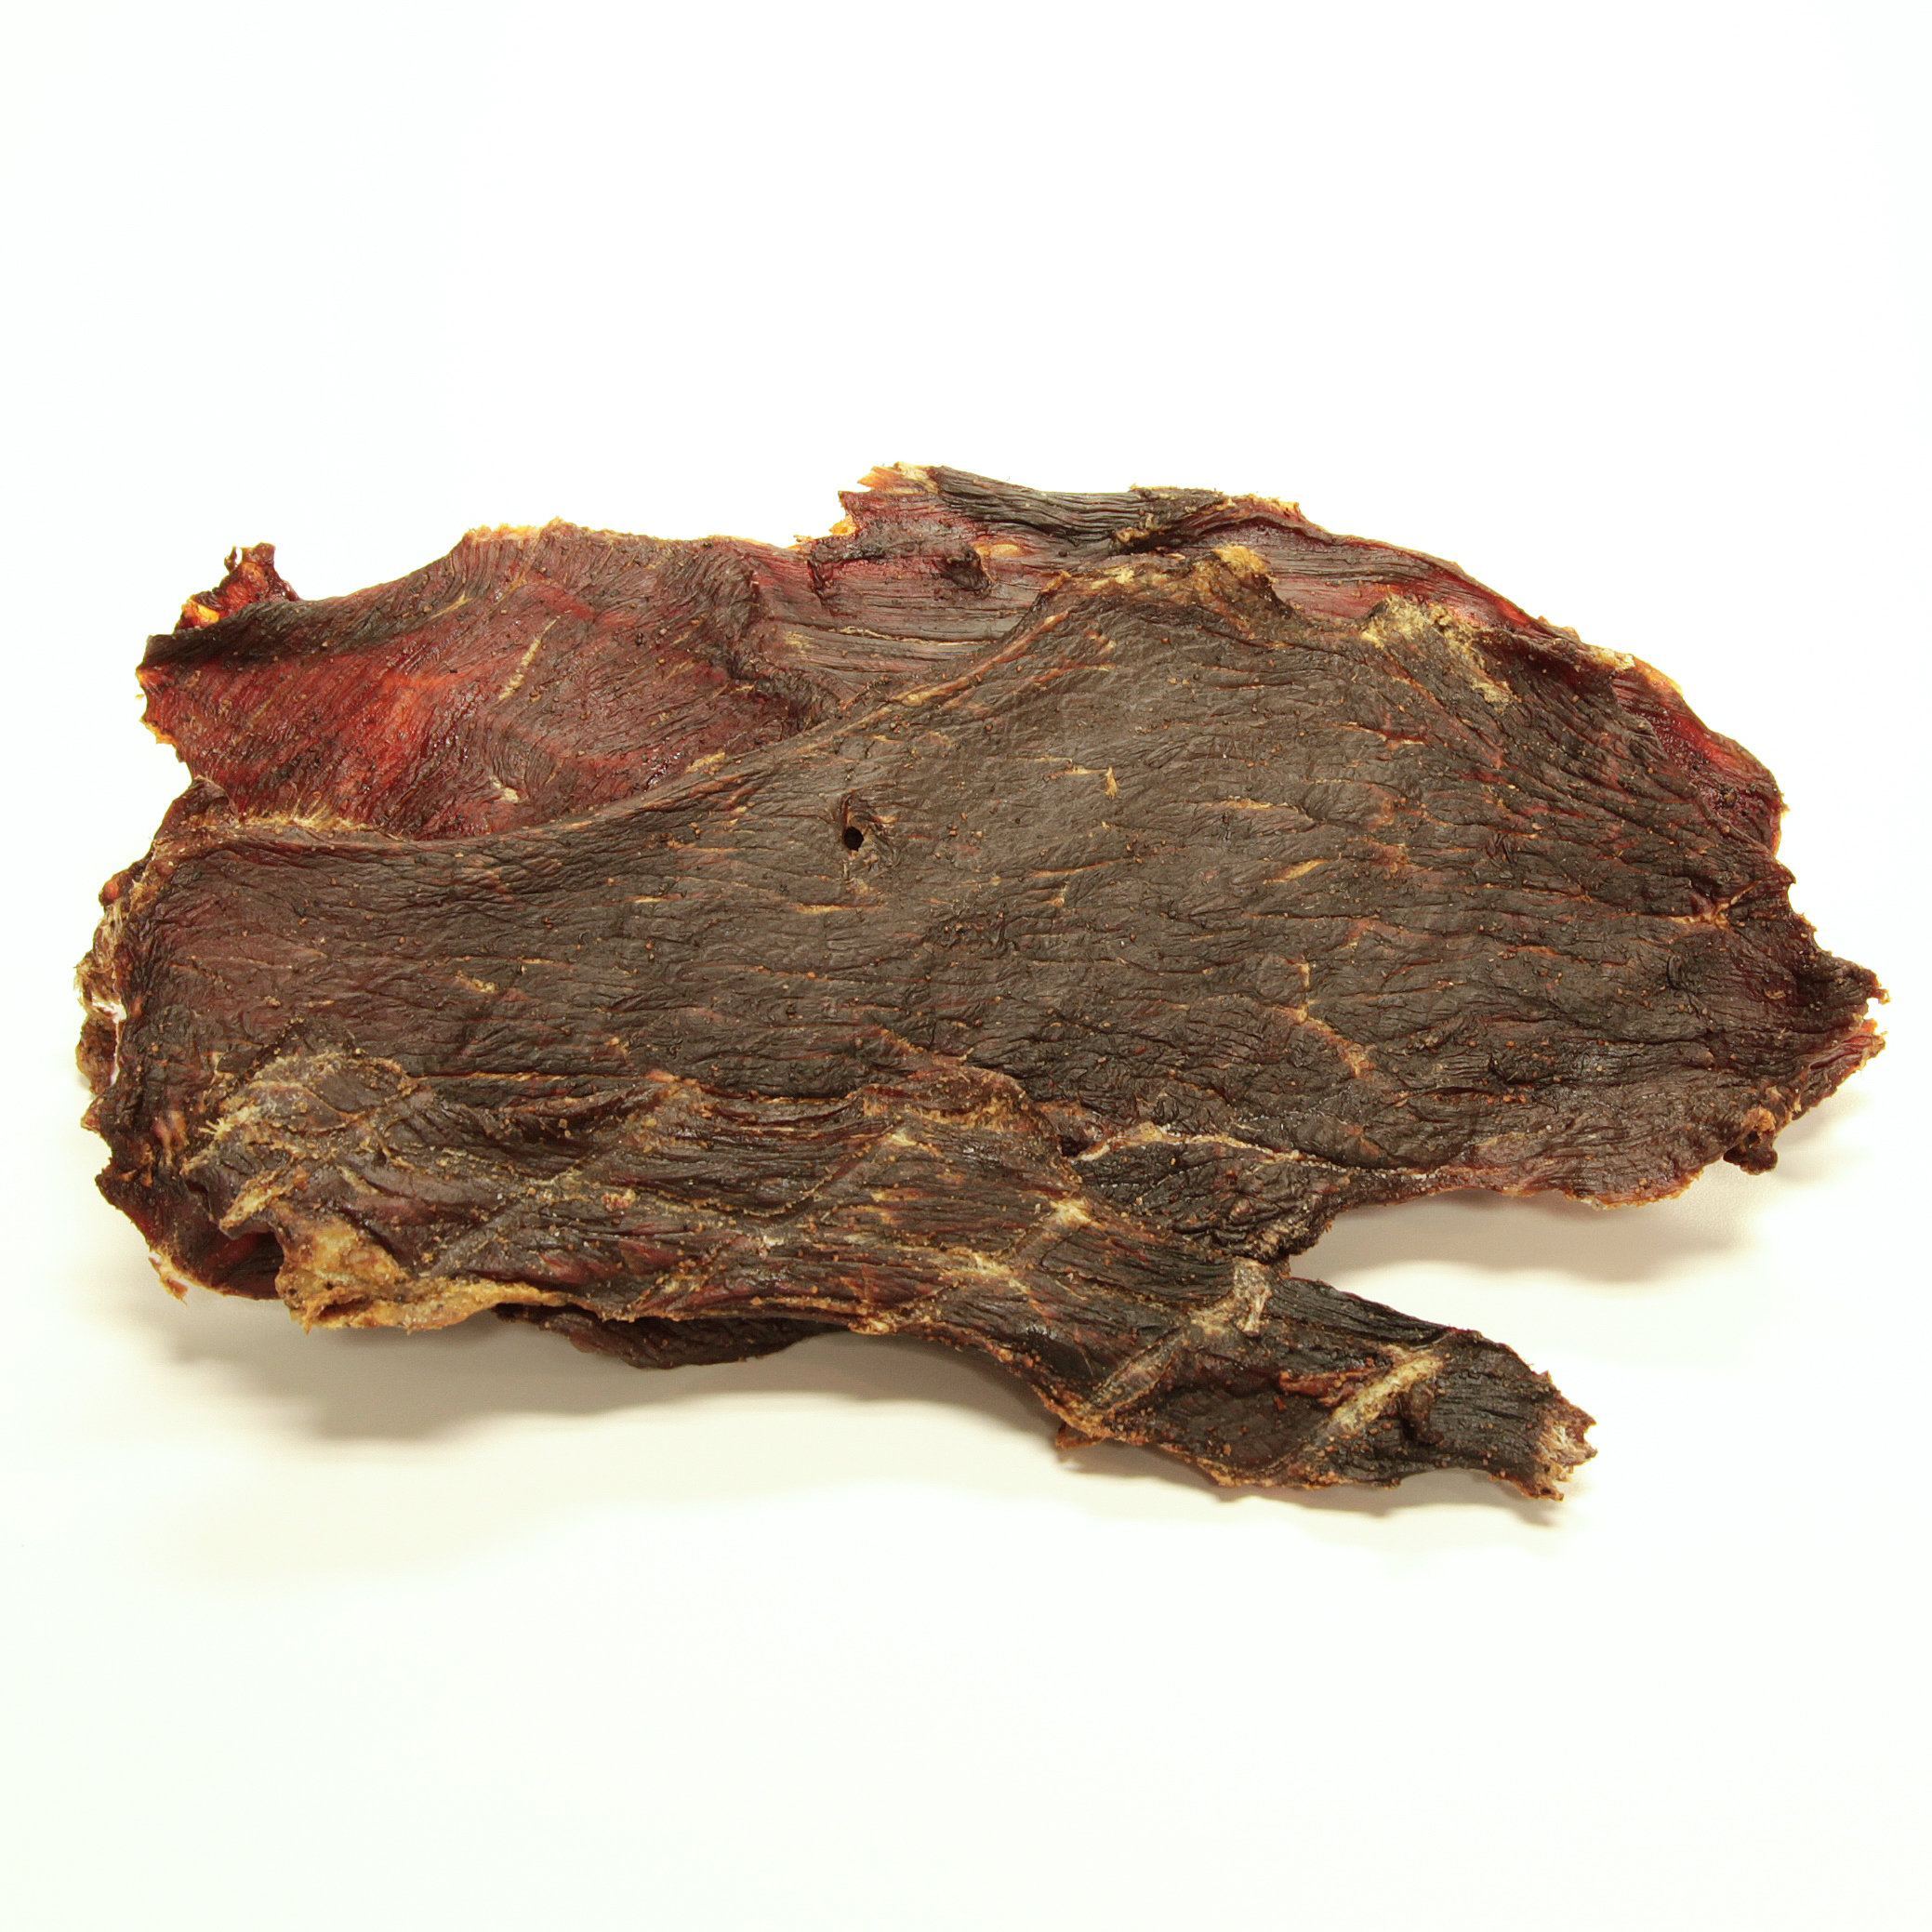 People's Choice, Peppered Beef Jerky, 4.OZ. 00056